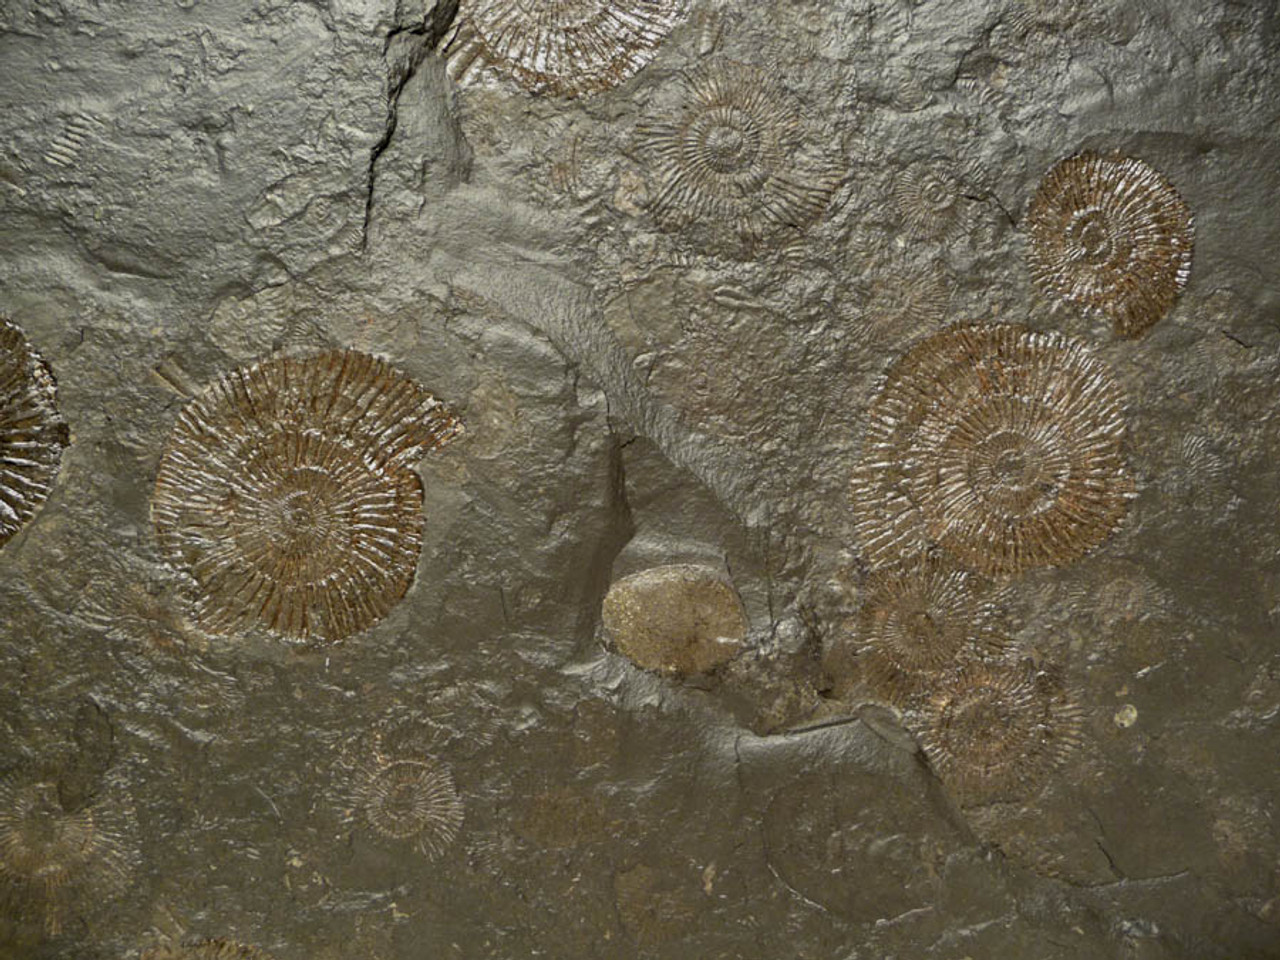 GOLD JURASSIC AMMONITES AND CLAMS ON MASS EXTINCTION FOSSIL SLAB OF BLACK SHALE  *AMX214